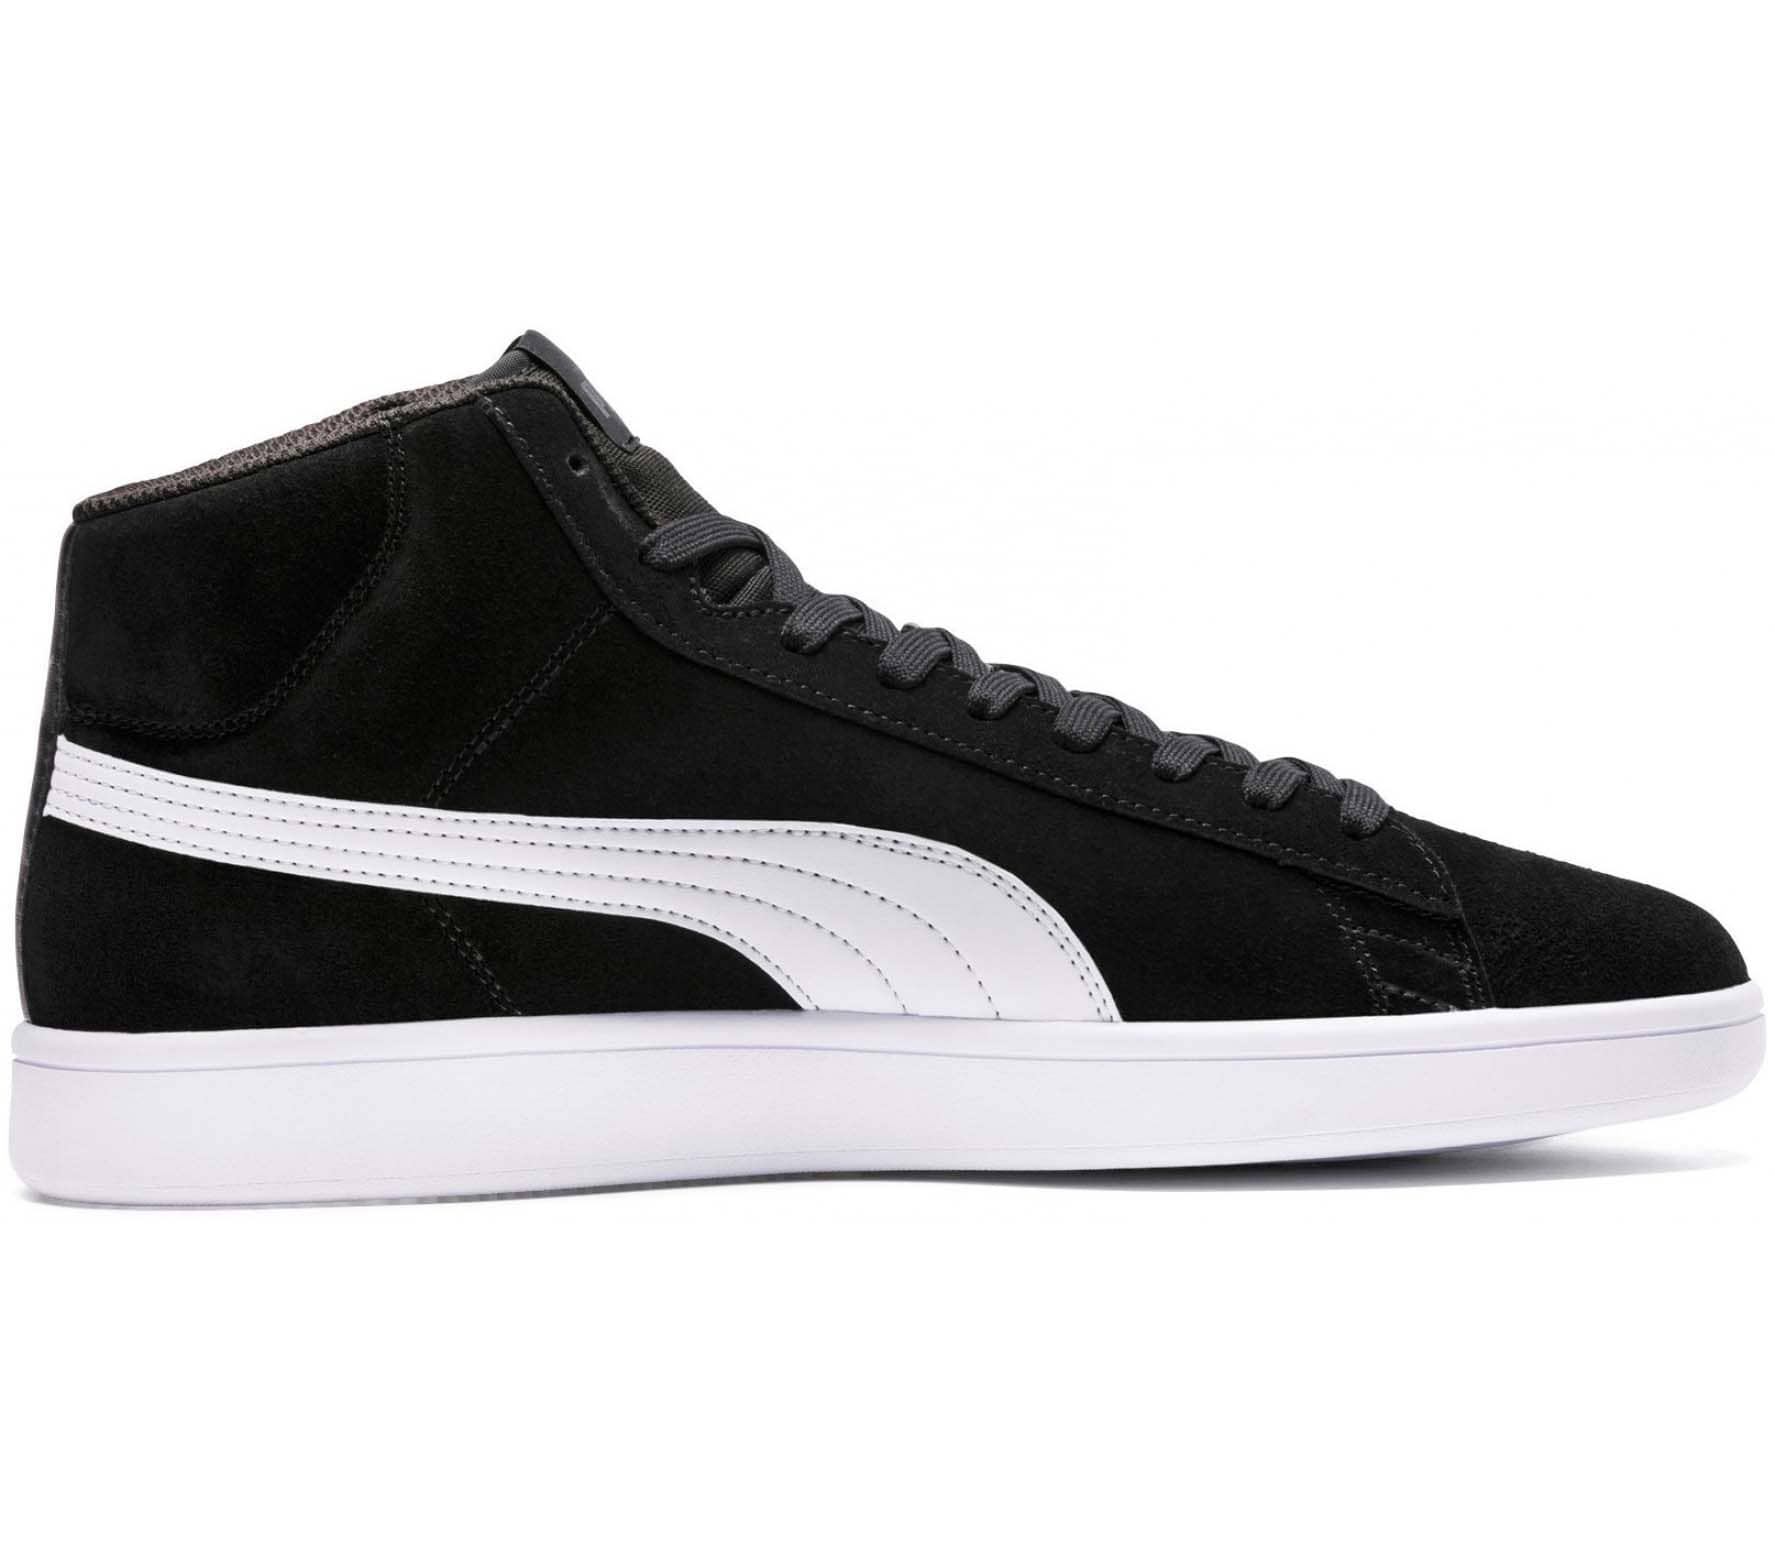 differently 3db6d 7f5f2 Puma Smash v2 Mid Suede Men Sneakers black